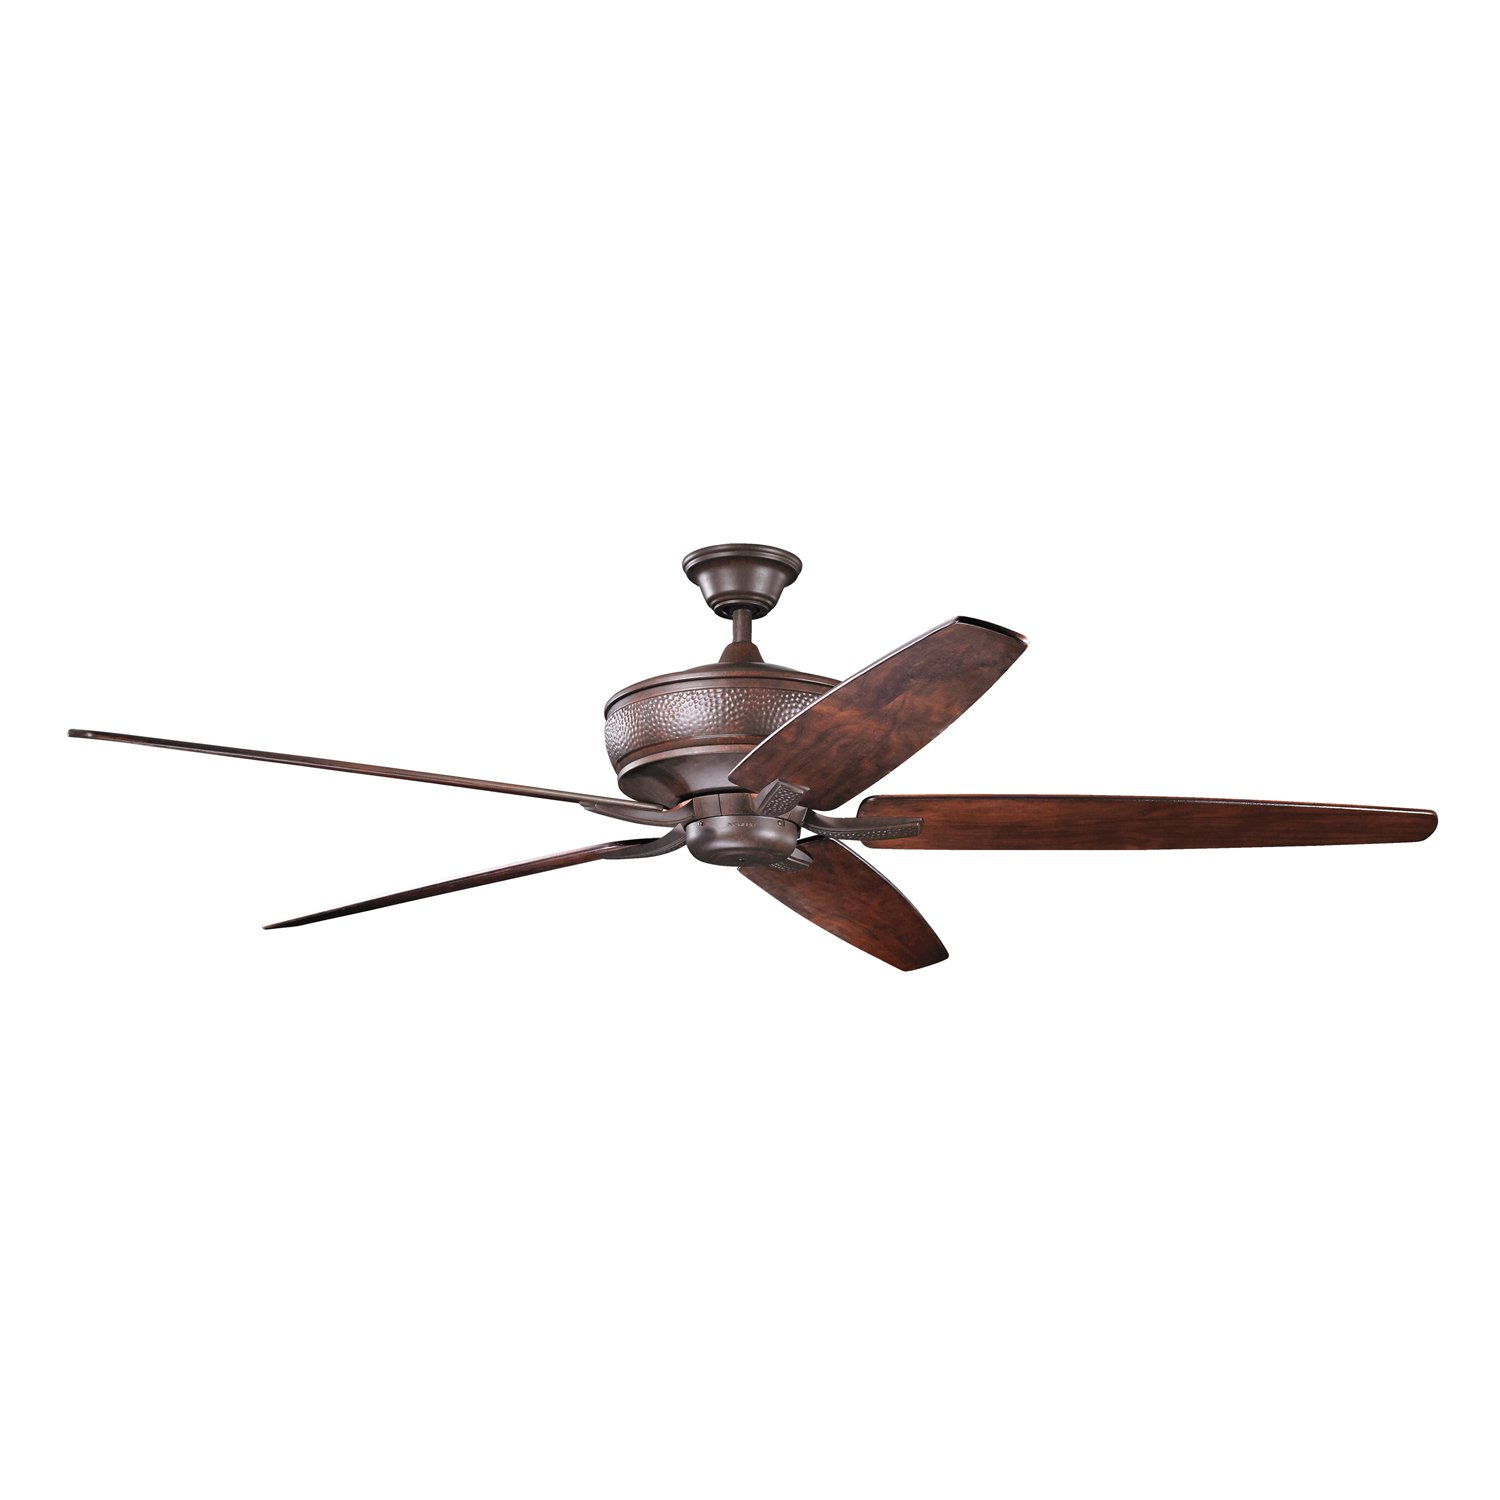 model in bronze verse maiden casablanca ceiling dual fan